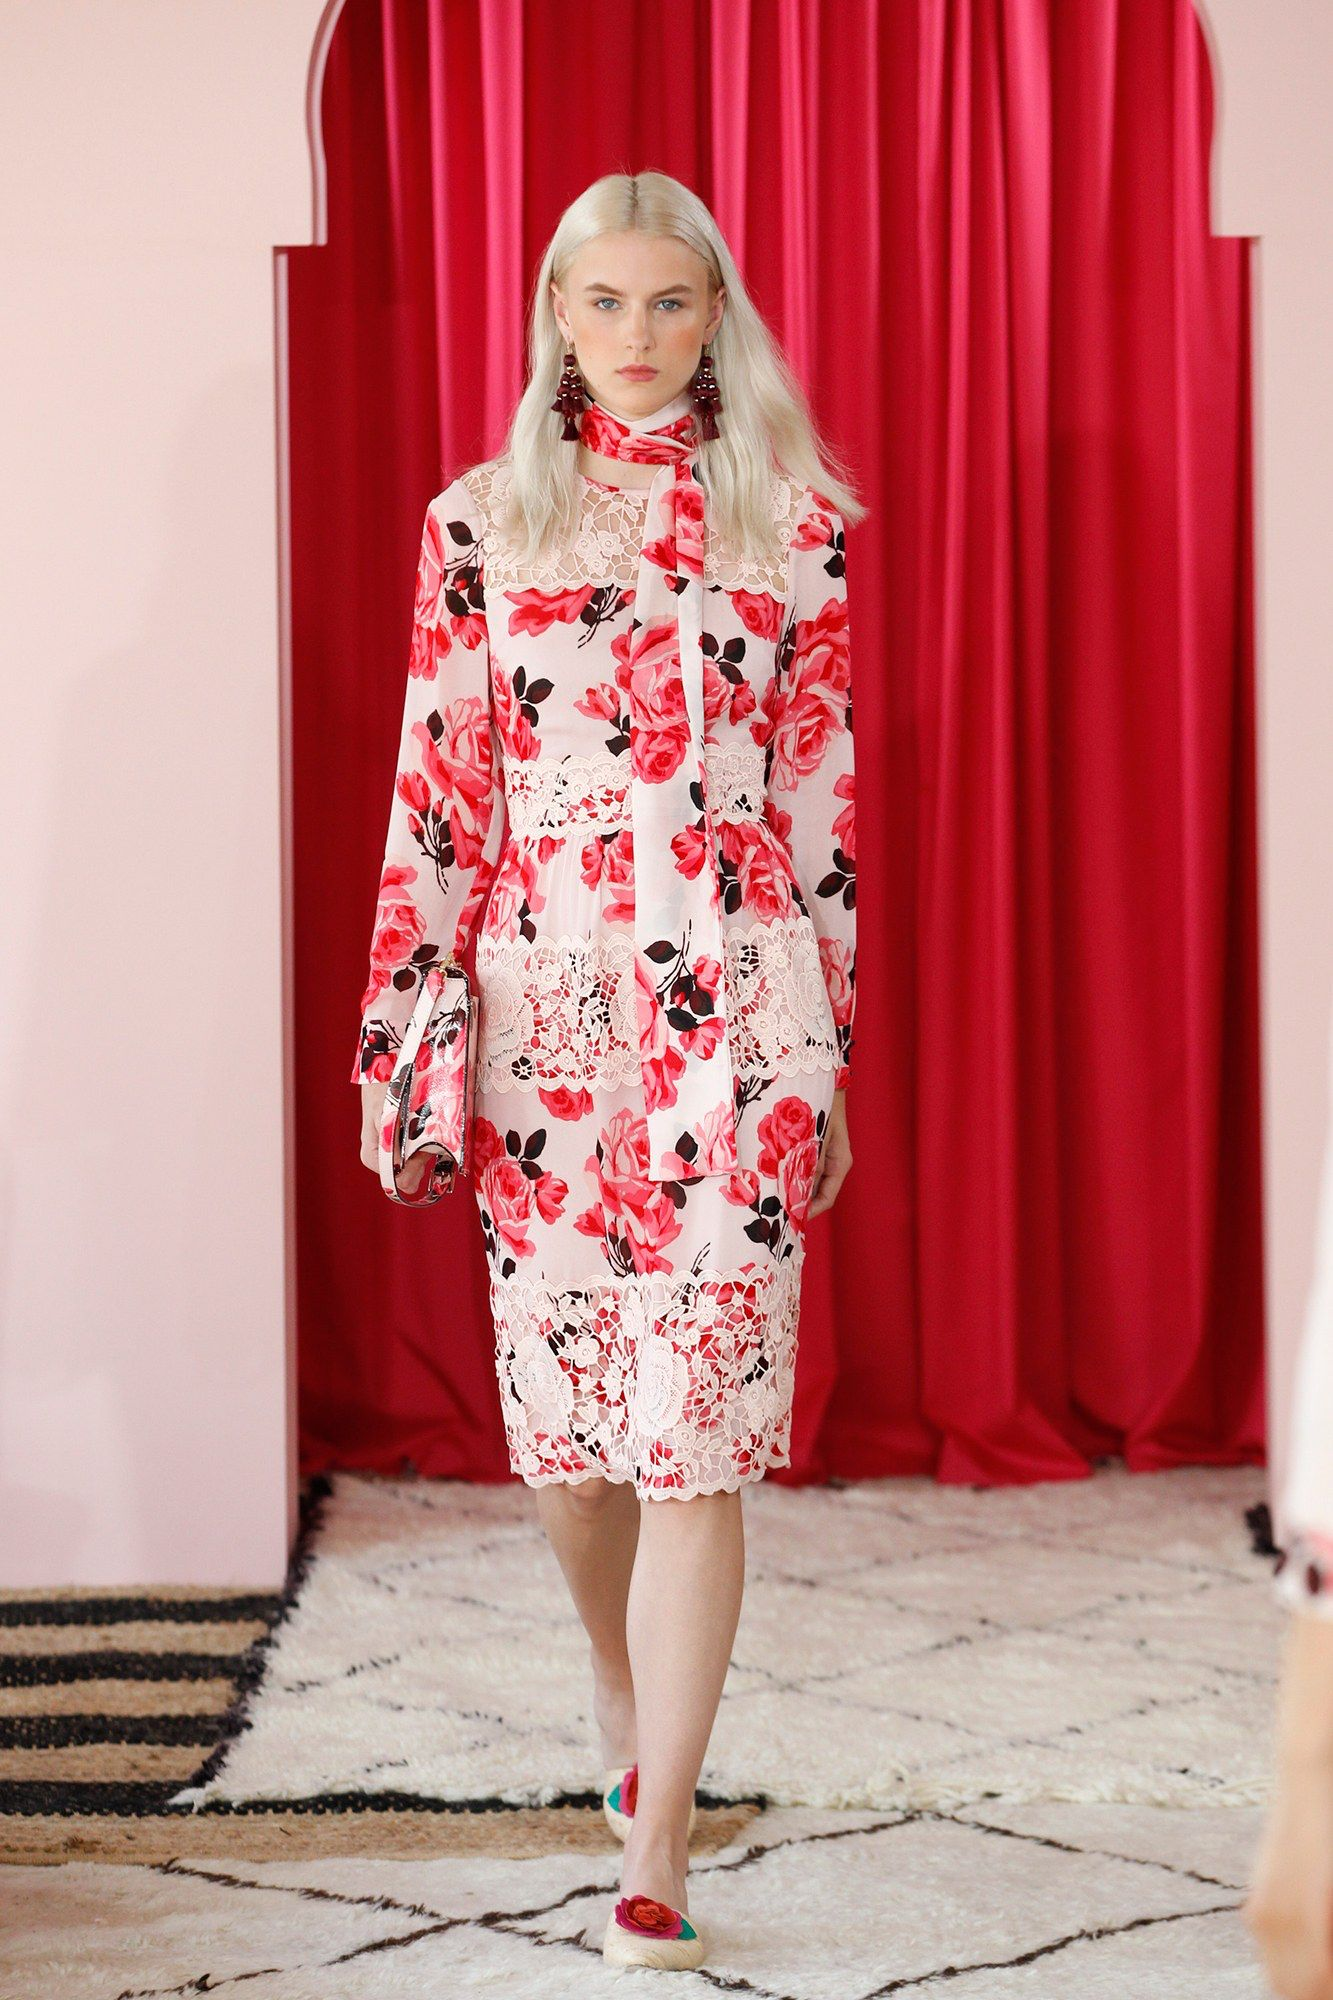 599c5223bc0 Kate Spade New York Spring 2017 Ready-to-Wear Fashion Show in 2018 ...